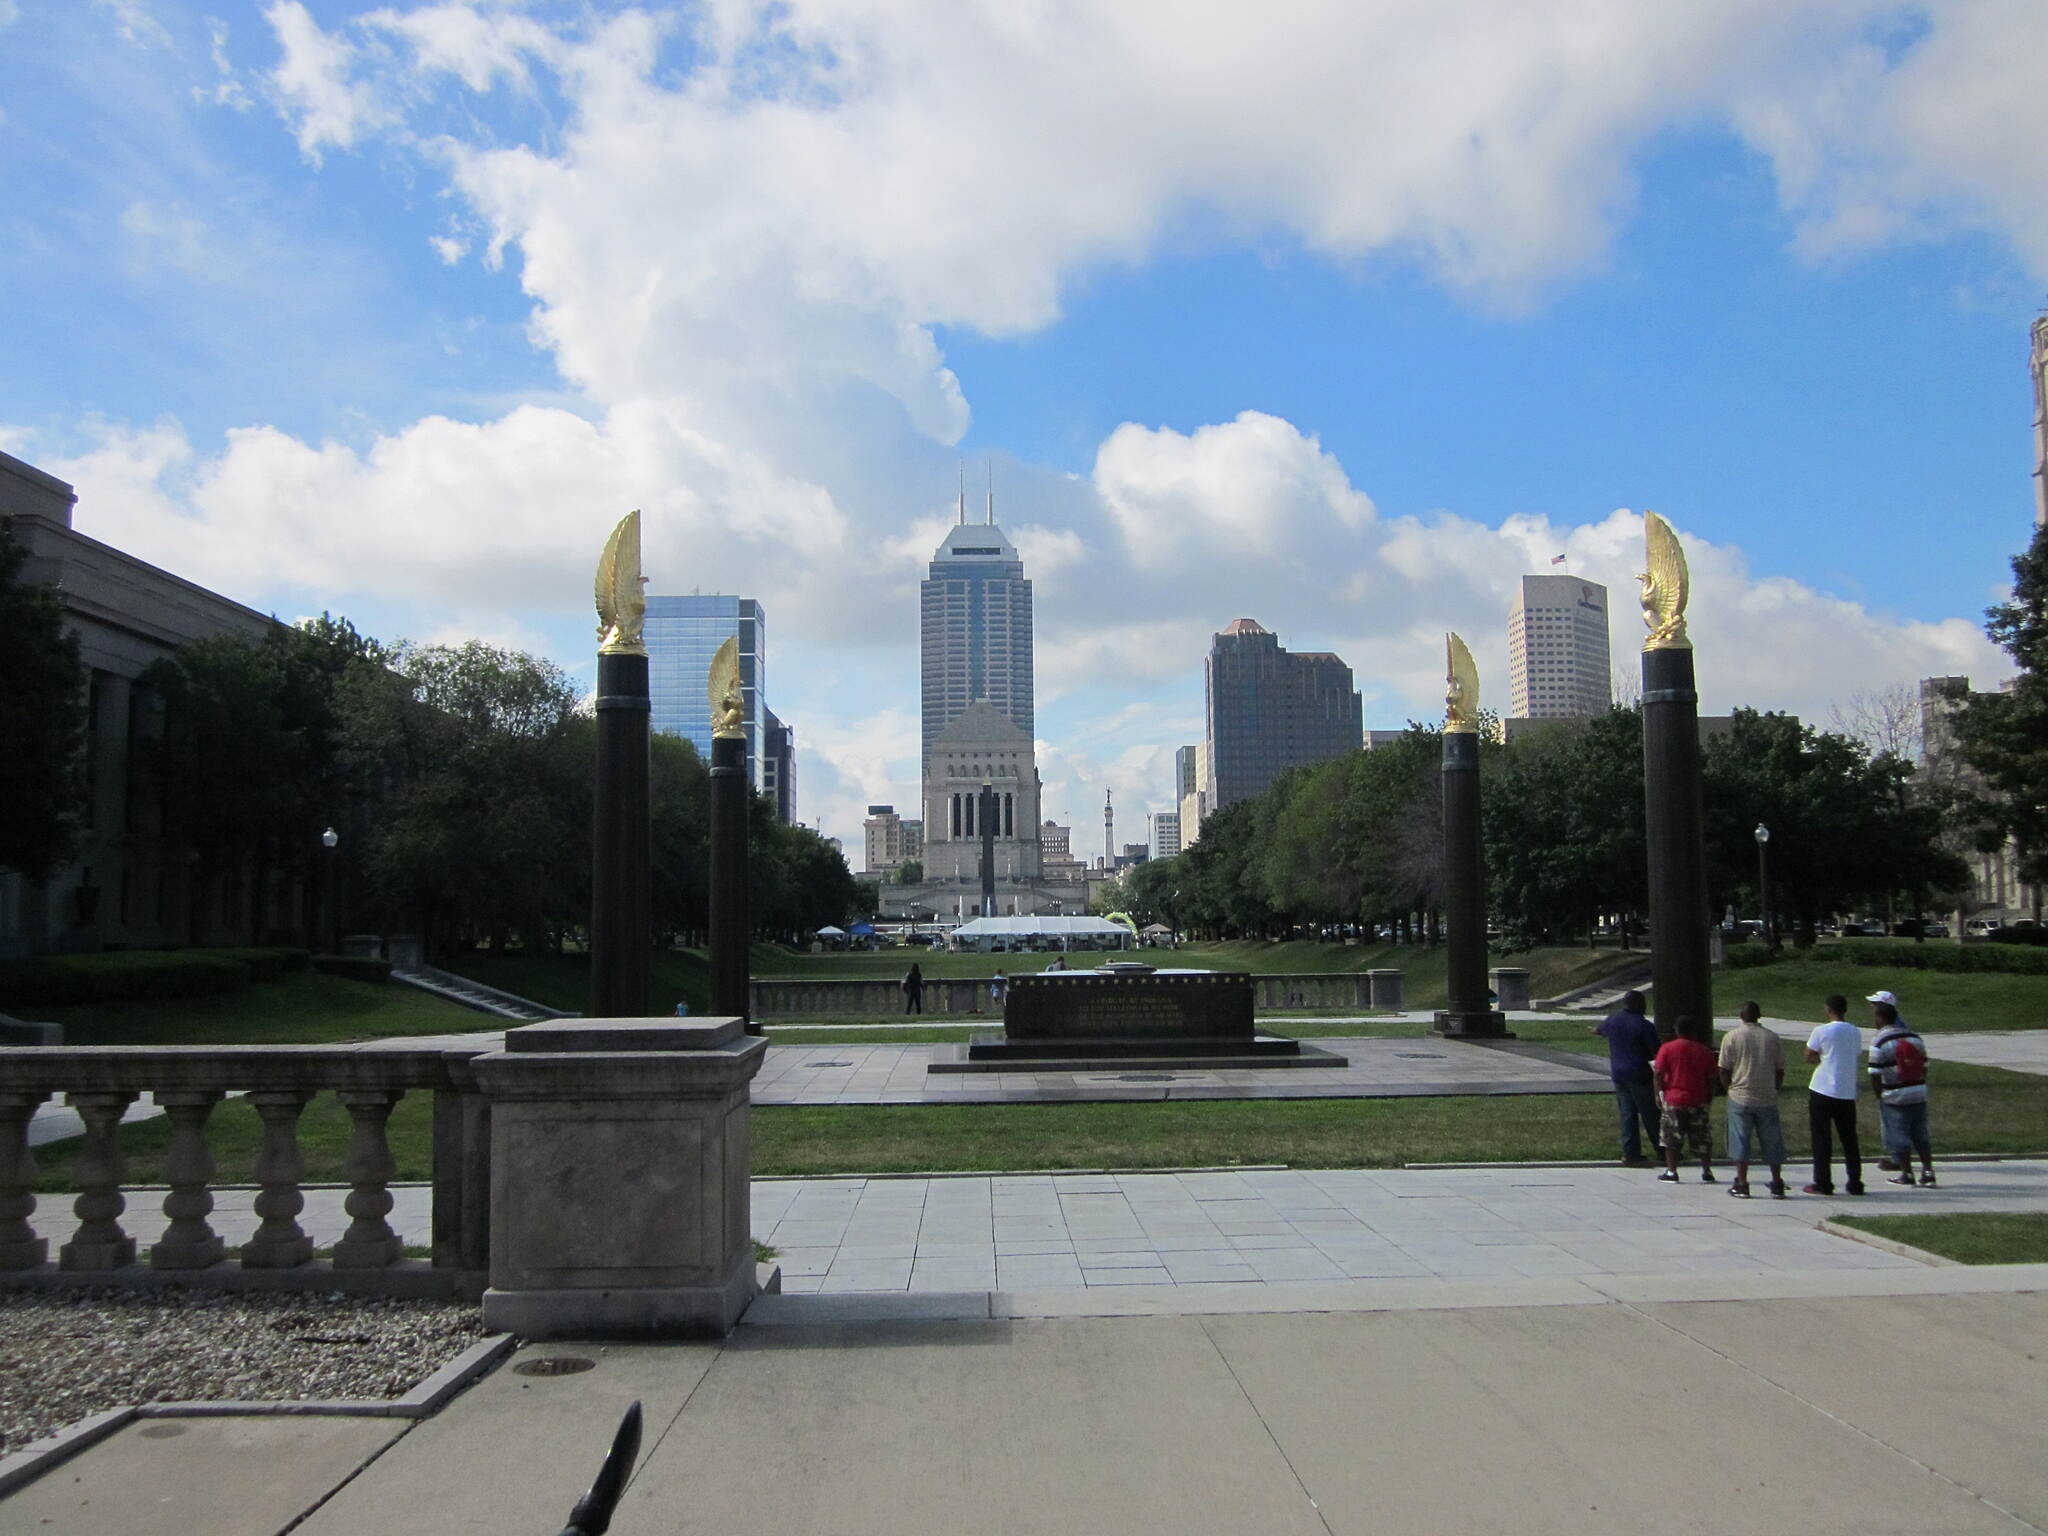 Indianapolis Cultural Trail American Legion Mall The expanse of American Legion Mall pays homage to America's veterans. Indianapolis boasts more war memorials than any city in America outside of Washington, DC.